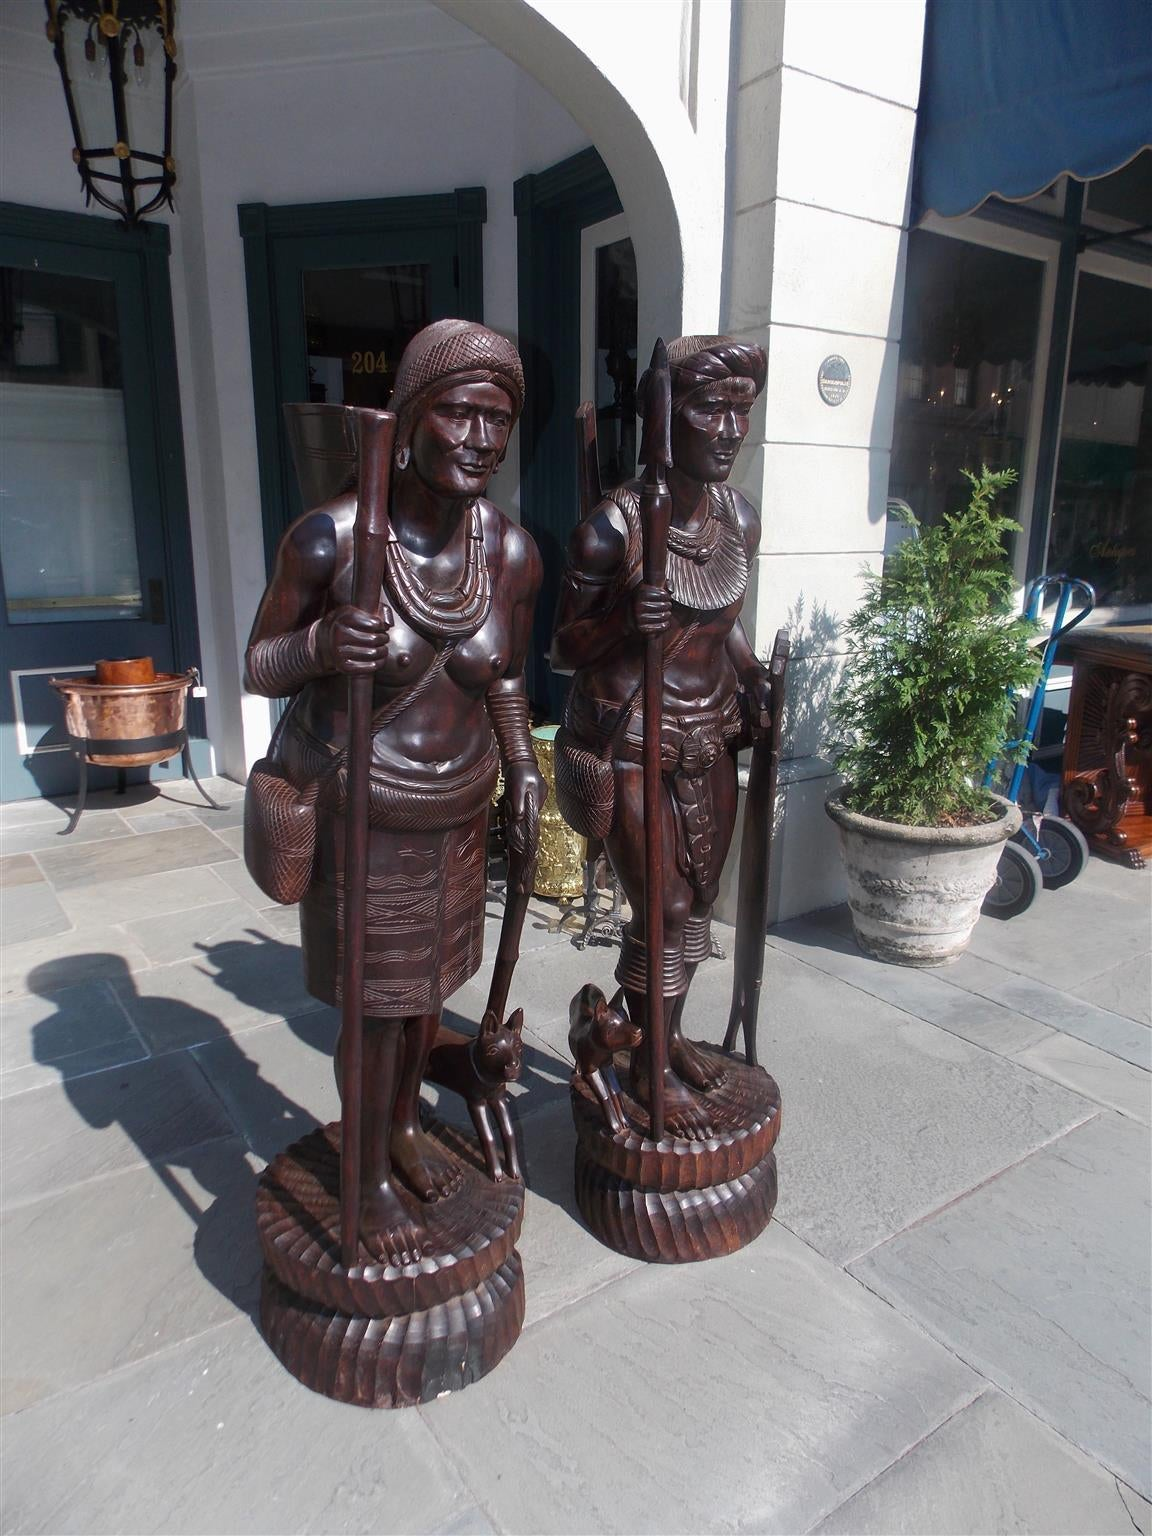 Pair of Igorot tribesmen figural wood carvings depicting hunter and huntress with companion canines, weaponry, and displayed on circular fluted plinths. Northern Luzon , Philippine Islands . Were feared & known as deadly head hunters. Early 20th